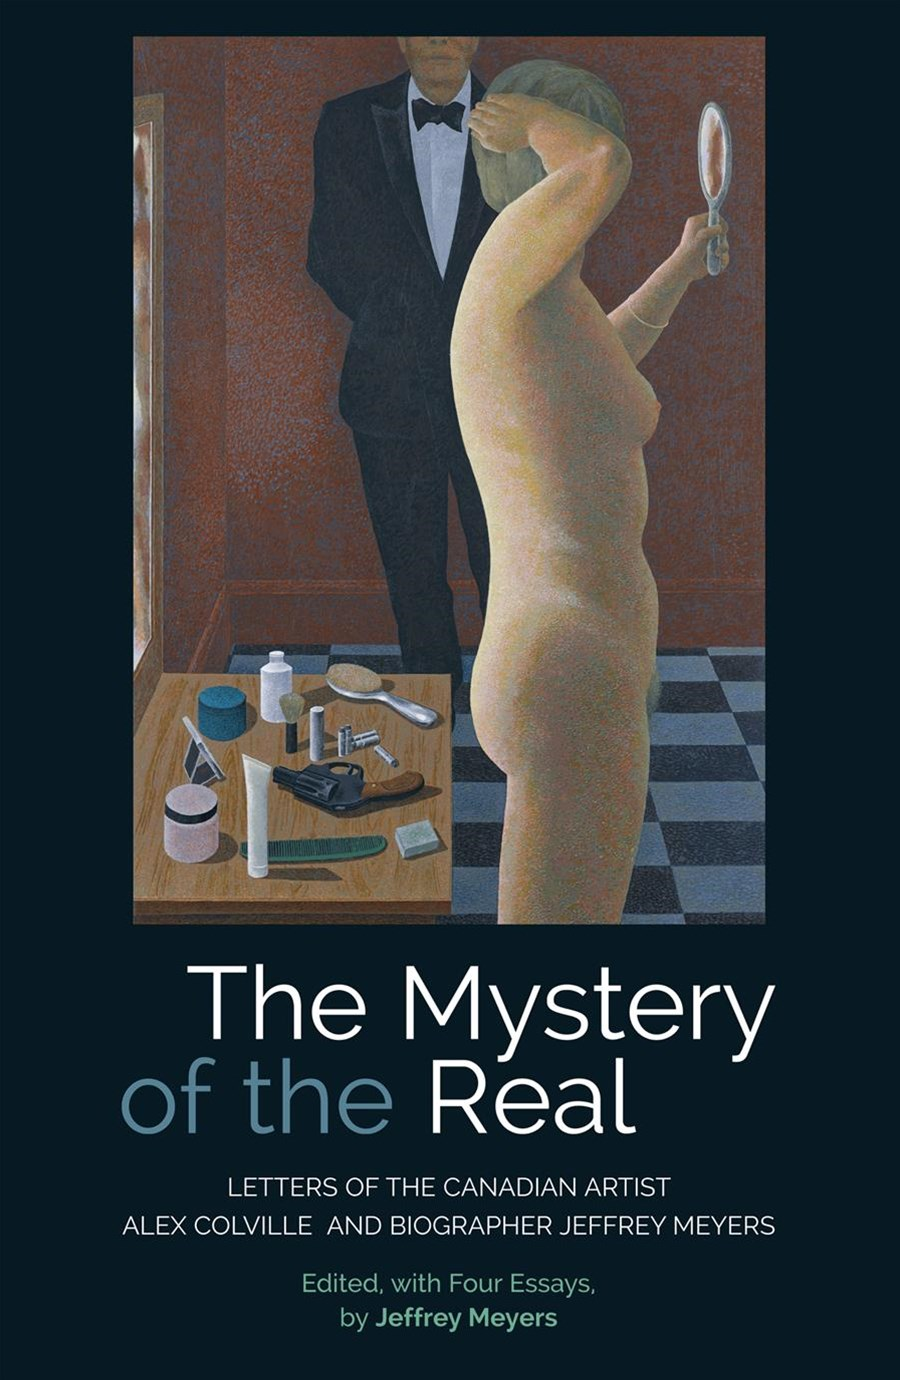 The Mystery of the Real